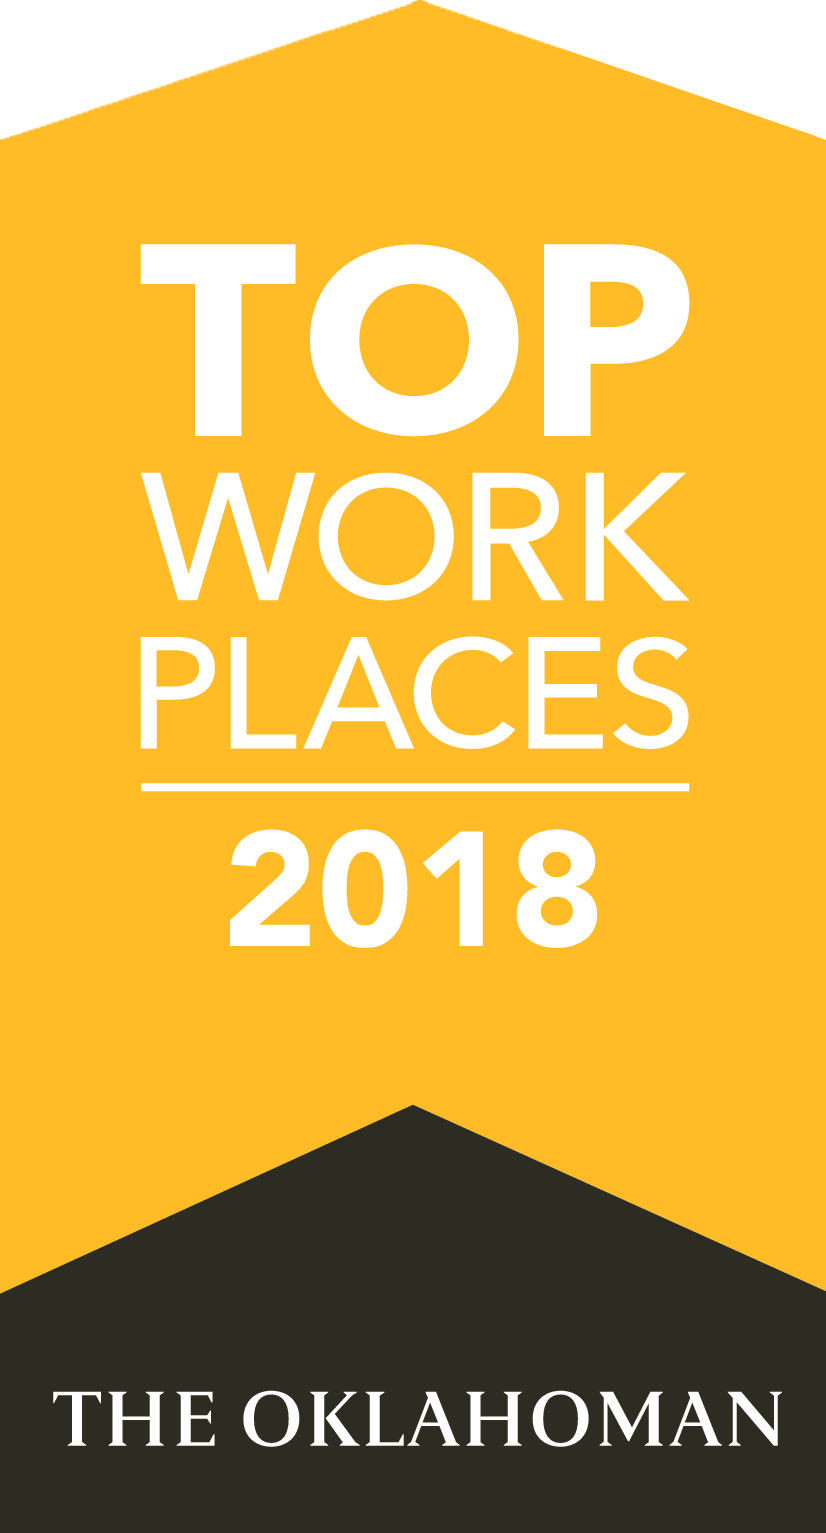 Oklahoma Top Work Places 2018